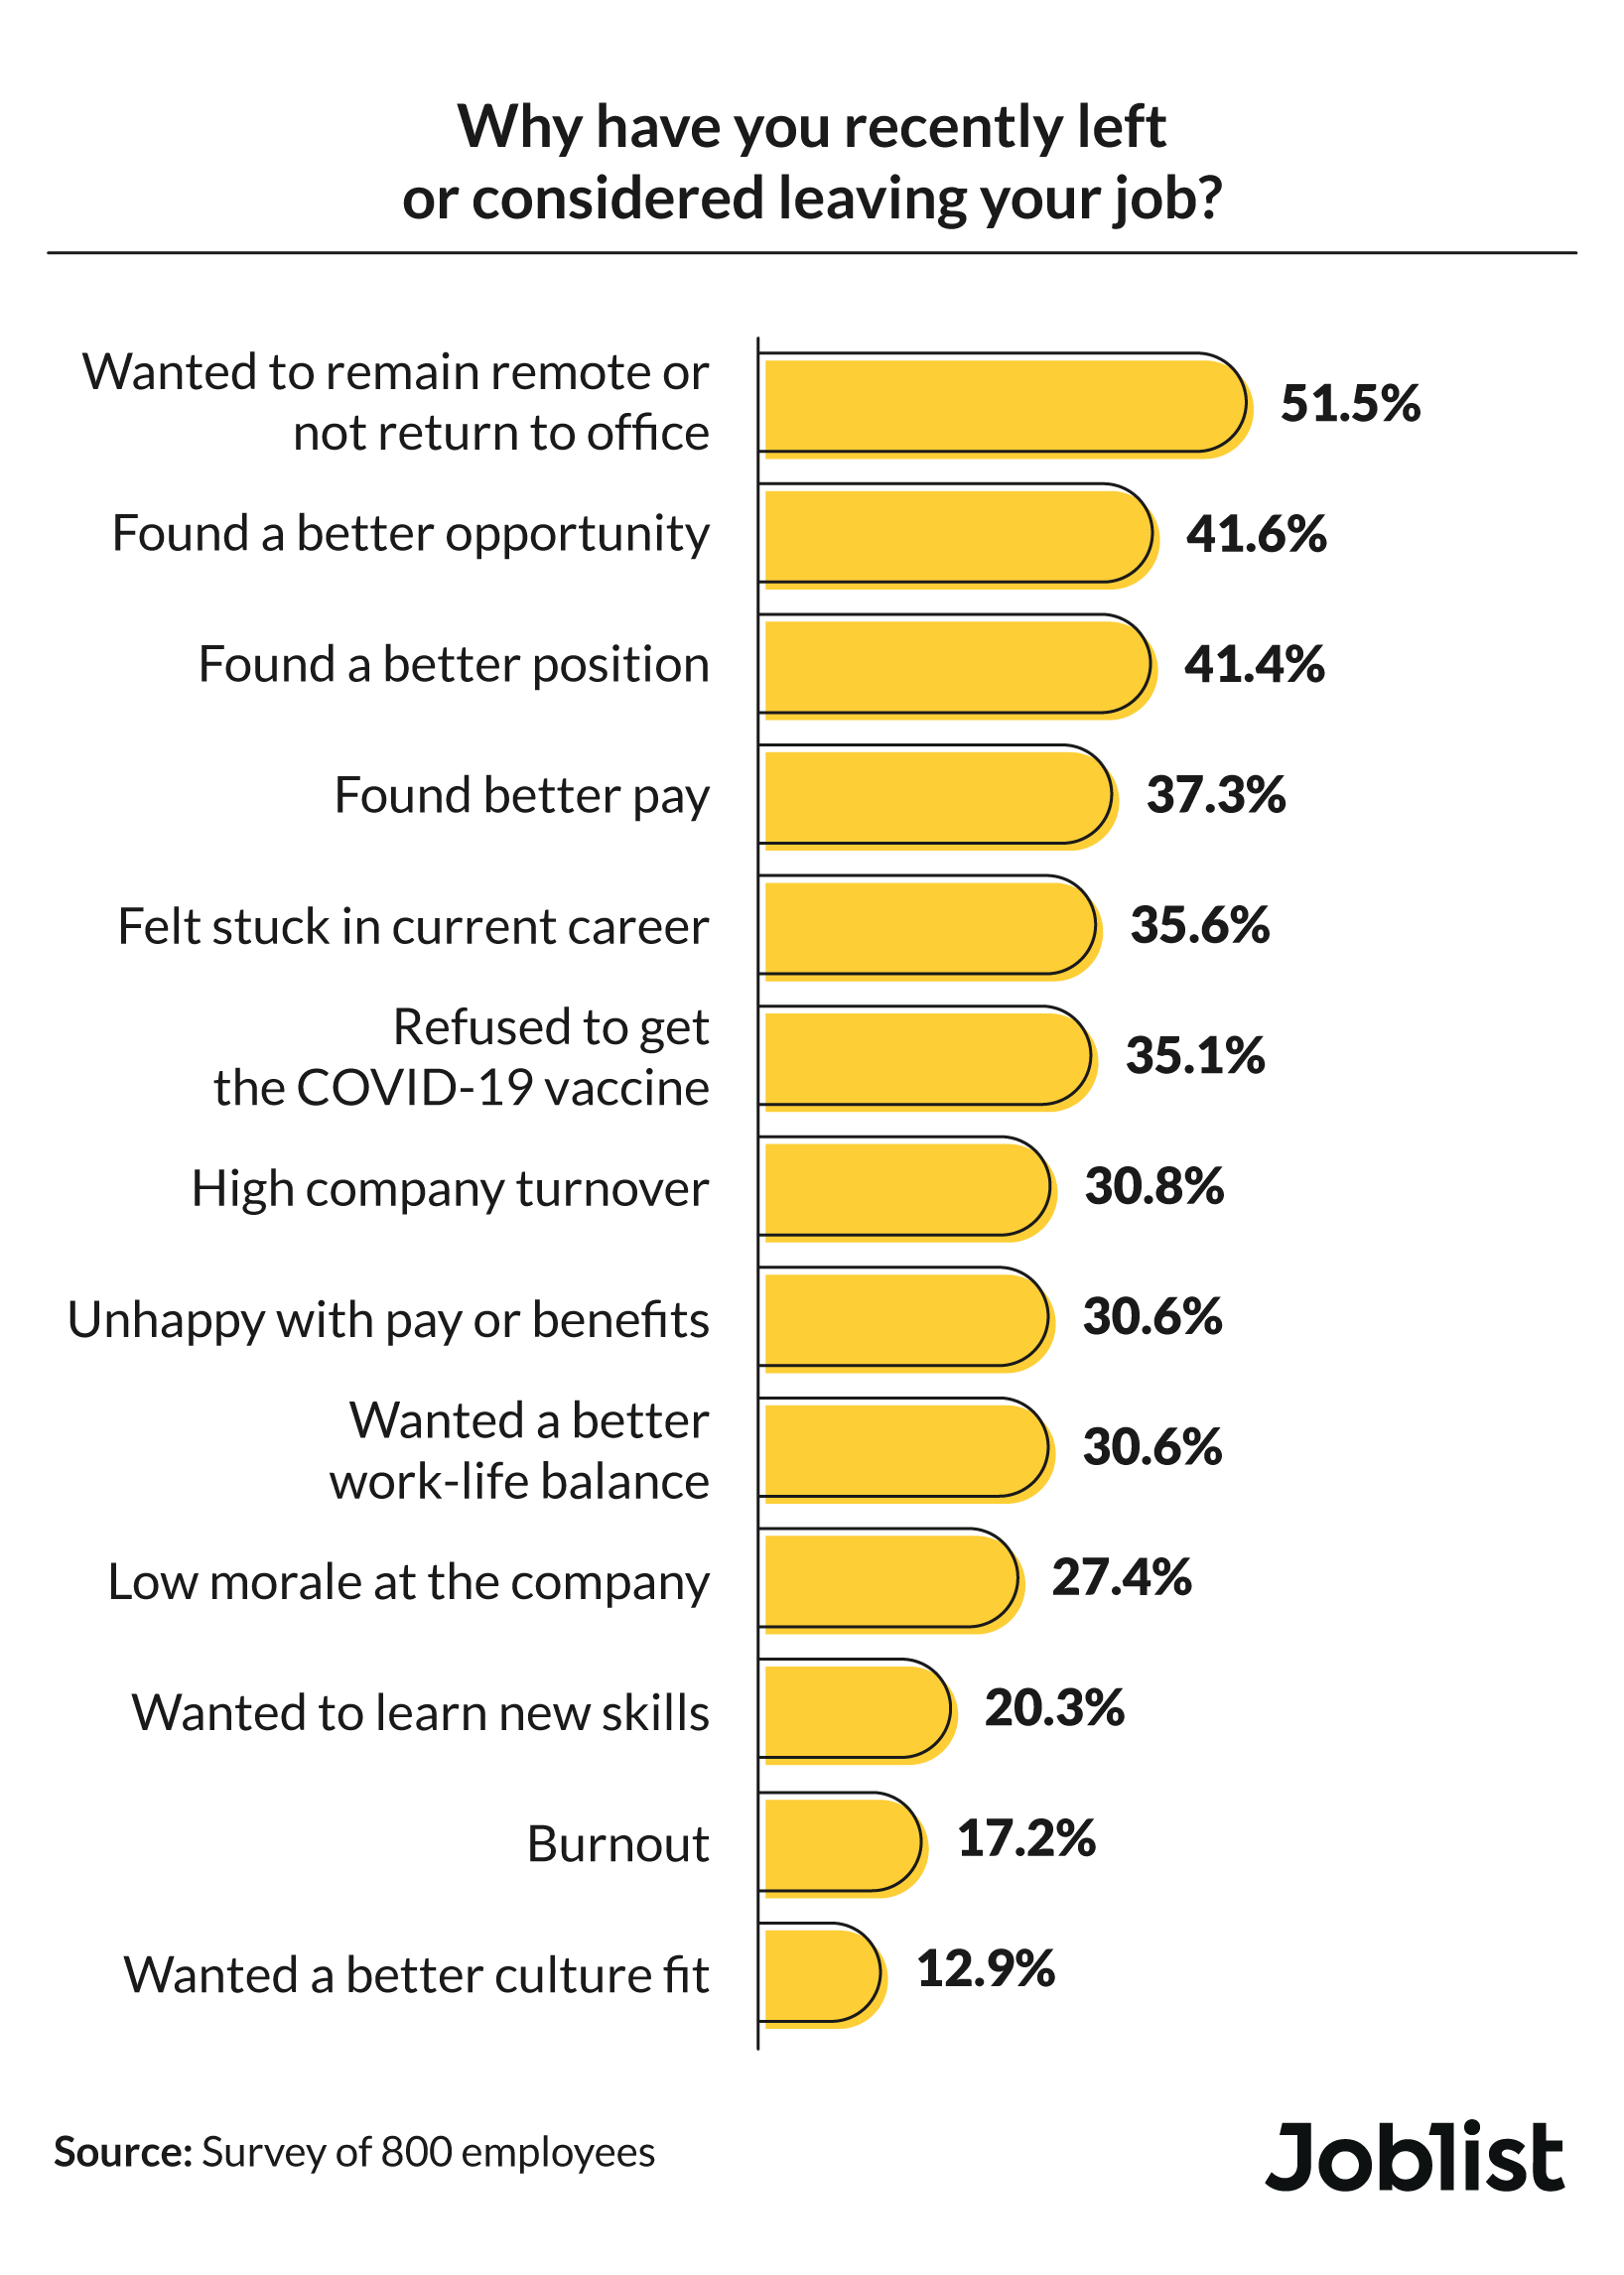 Employees' reasons for recently leaving or considering leaving their job